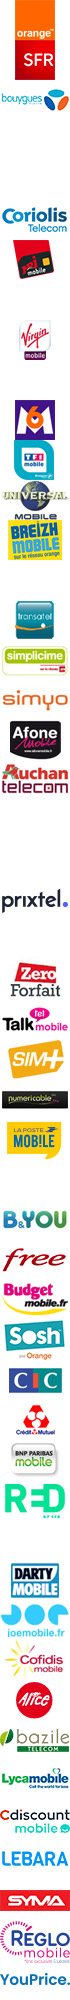 forfait SFR Carr� Tablette et Cl� 250 Mo (version �co) 250 Mo. Sans engagement